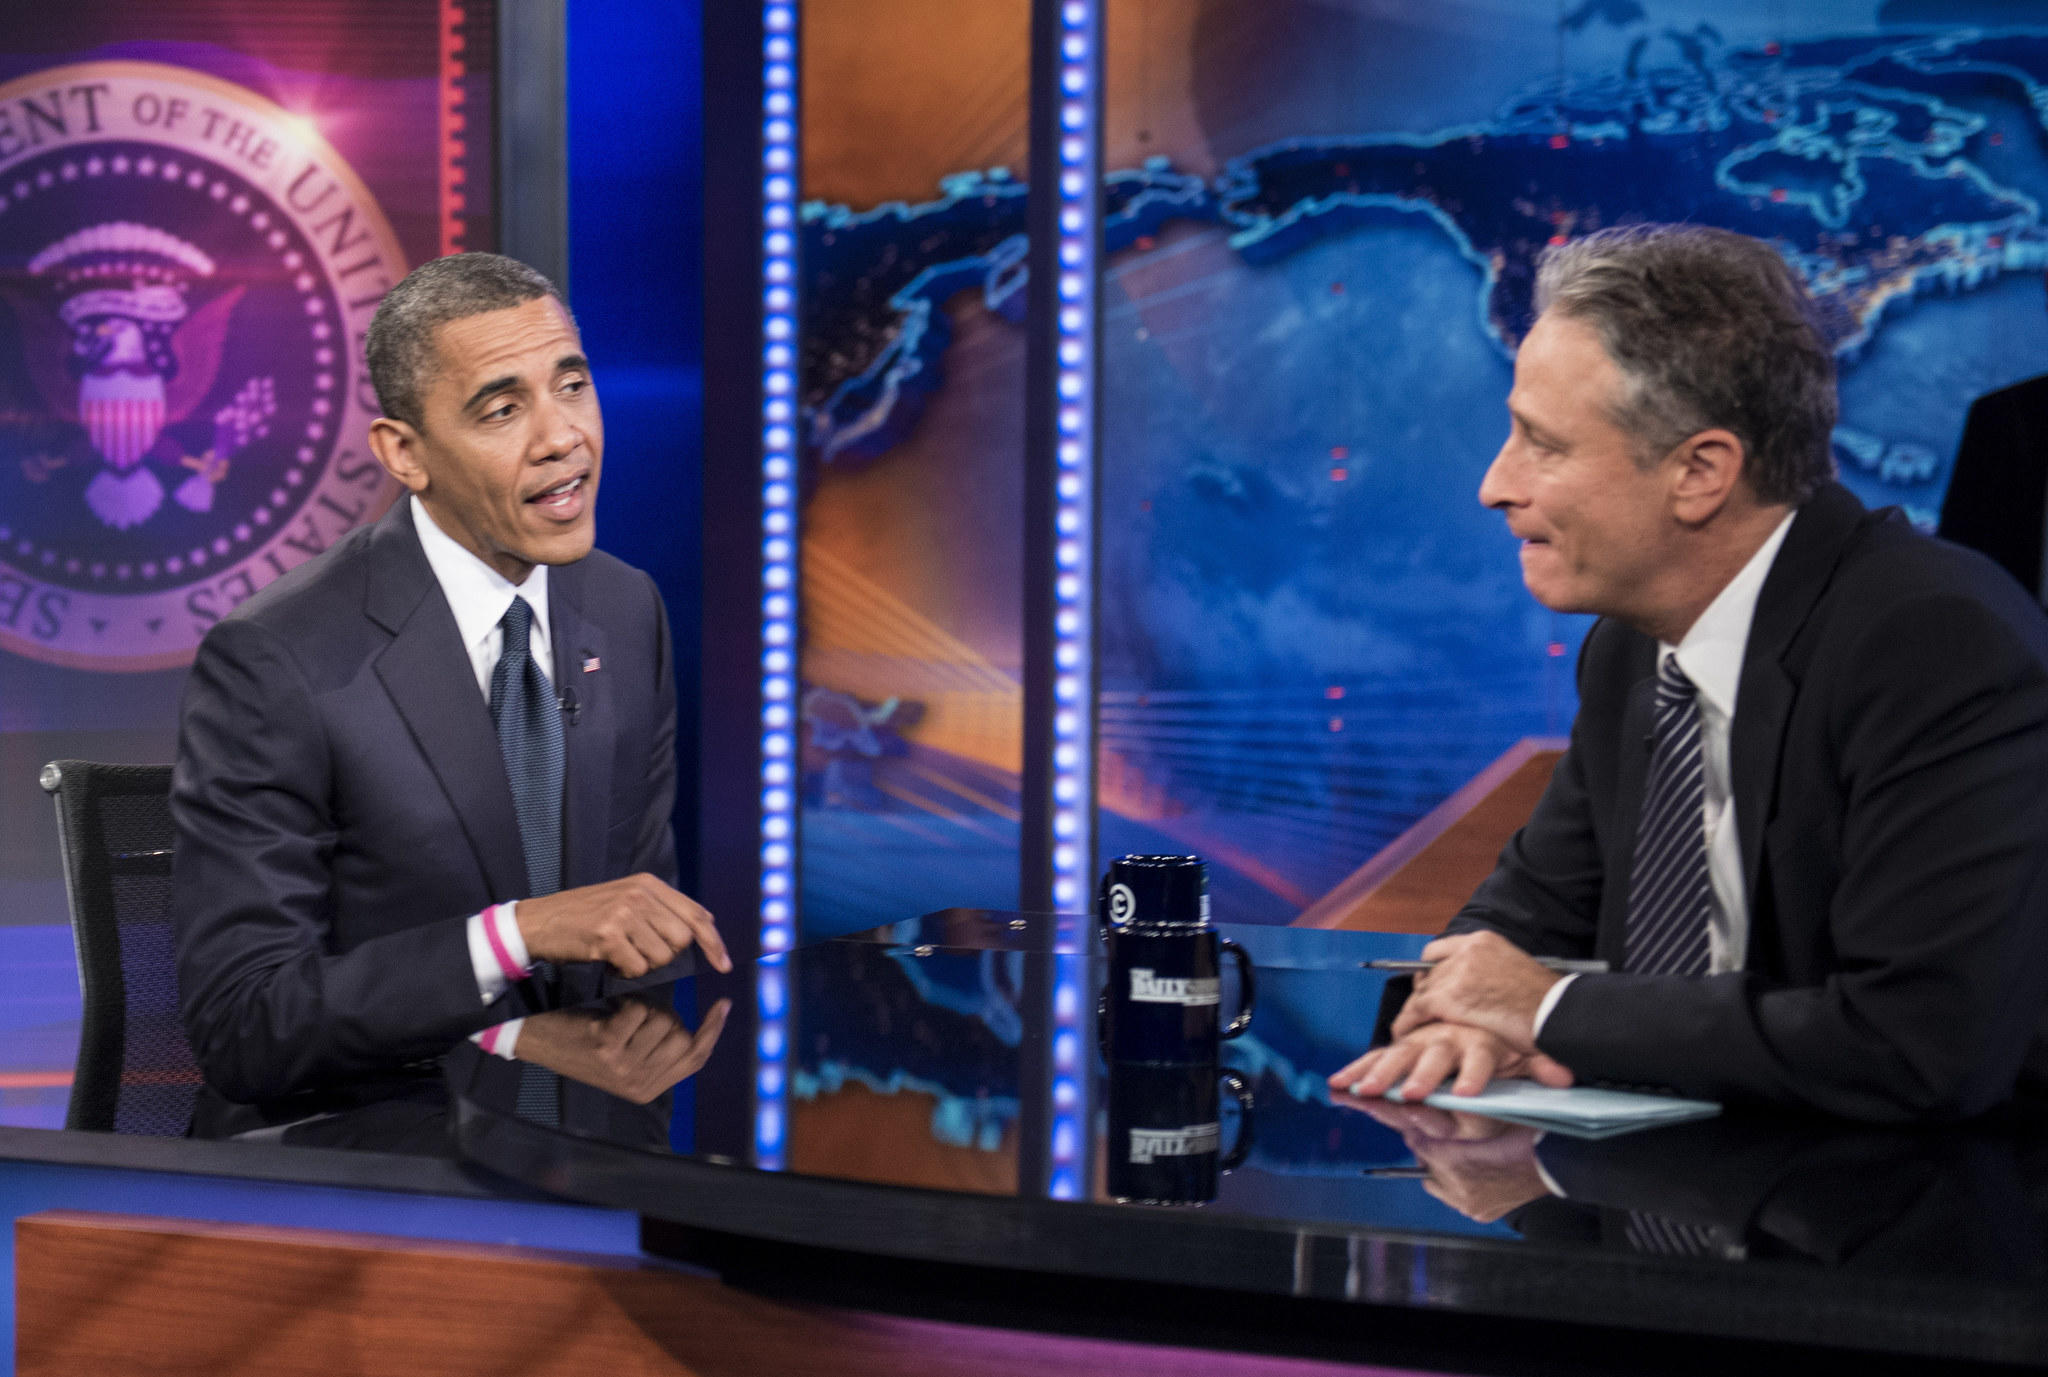 """President Barack Obama and host Jon Stewart speak during a break in the live taping of Comedy Central's """"Daily Show with Jon Stewart"""" on October 18, 2012 in New York."""